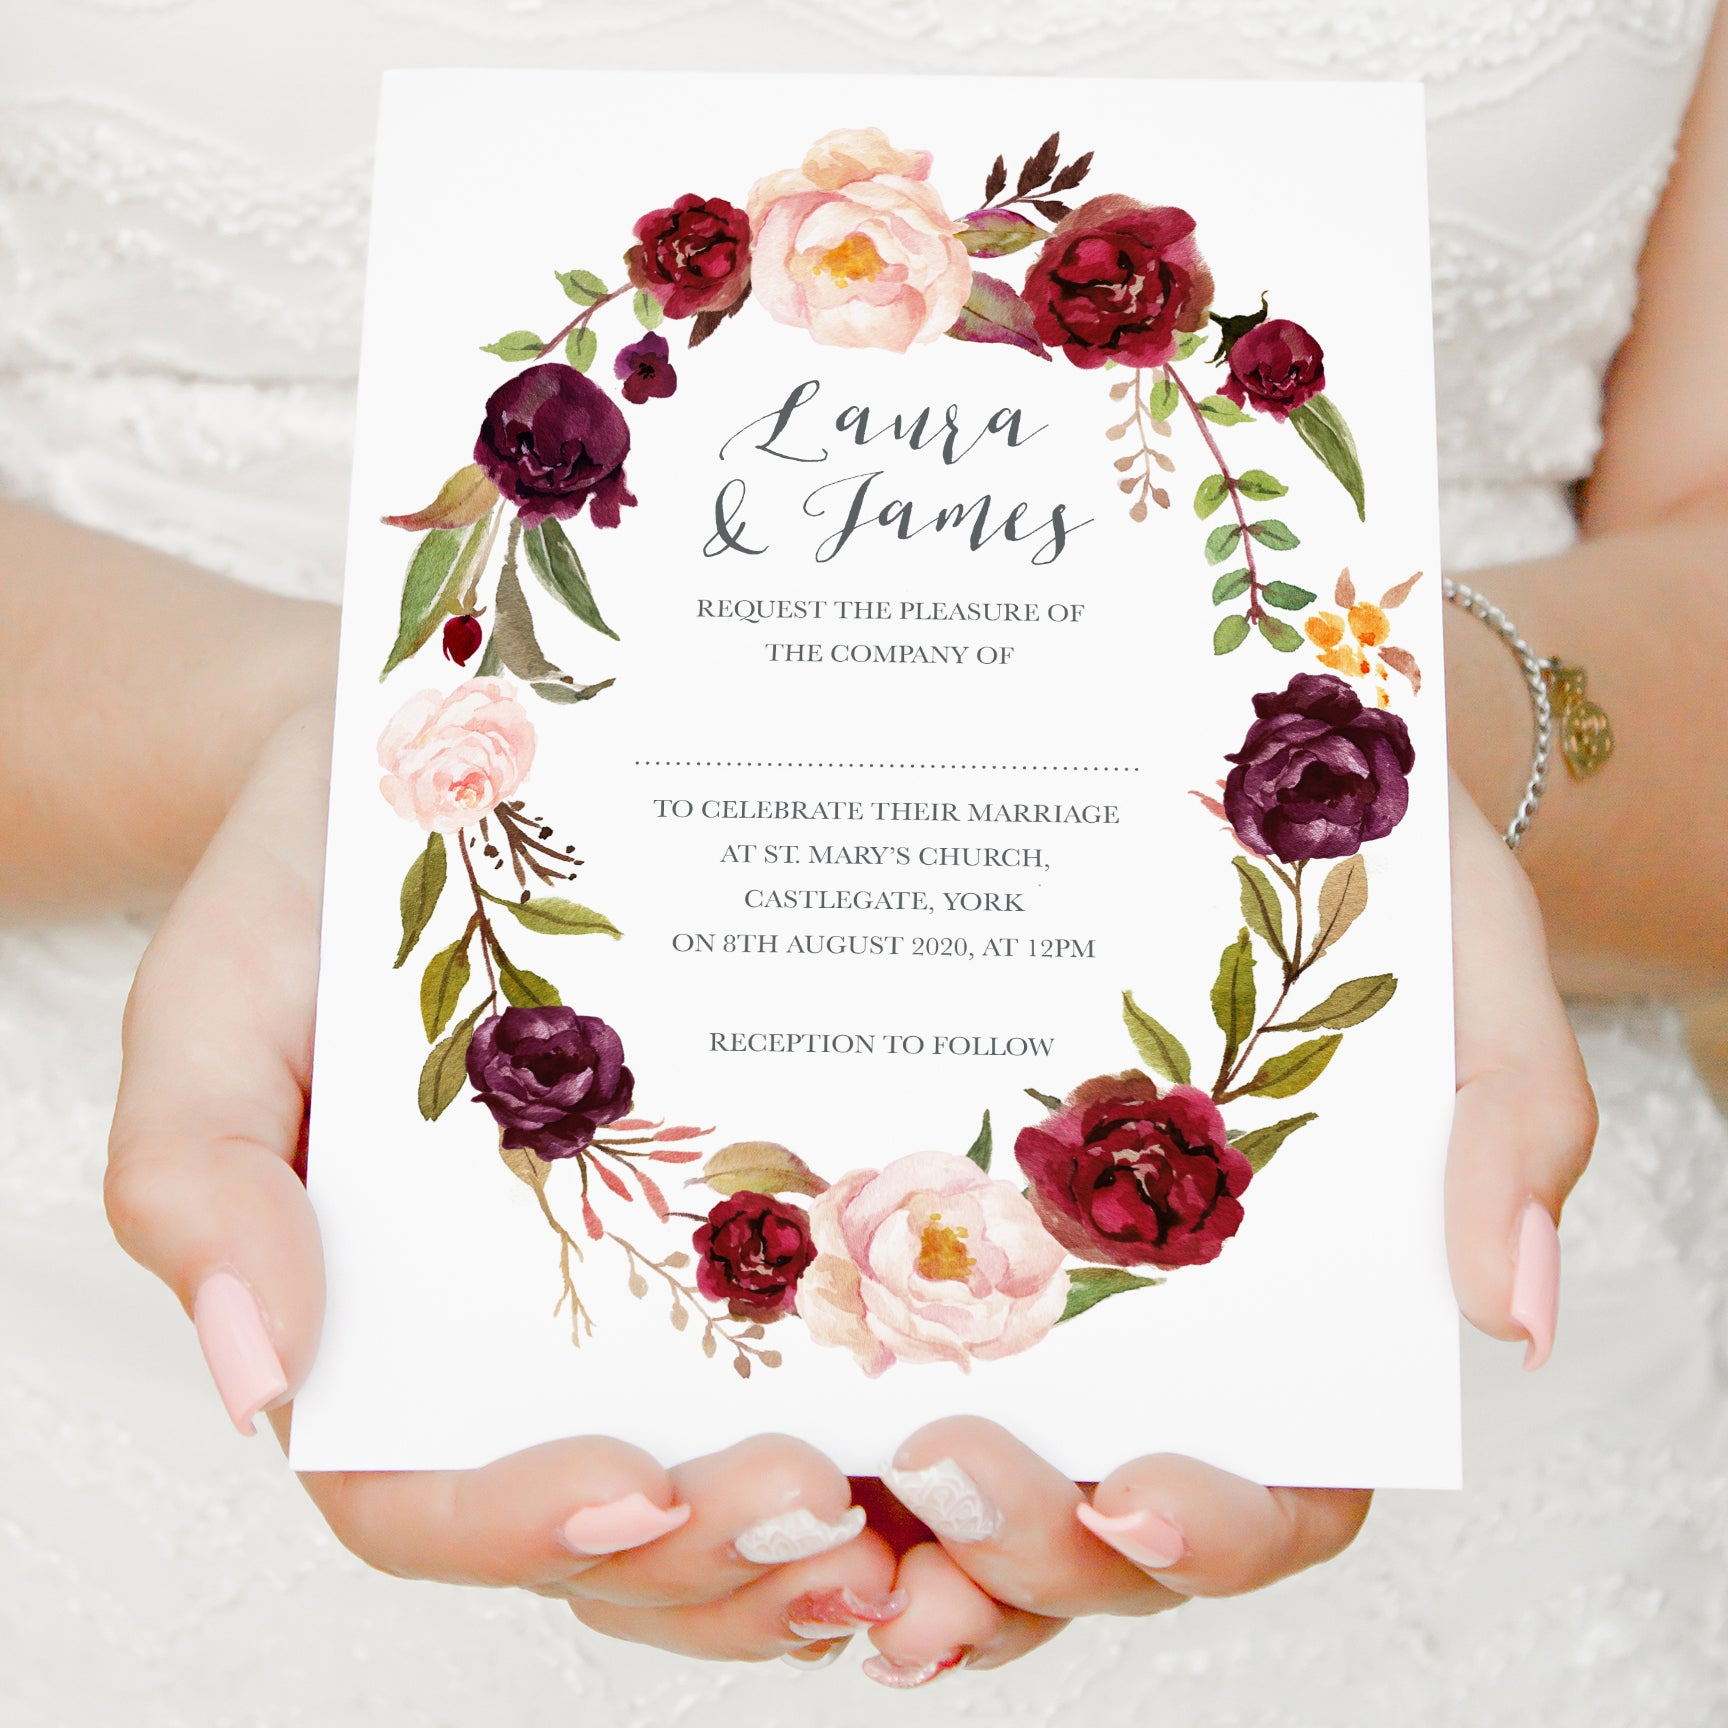 Wedding Invitations With Red Roses: Boho Red Rose Wedding Invitations, Oval Wreath, Burgundy